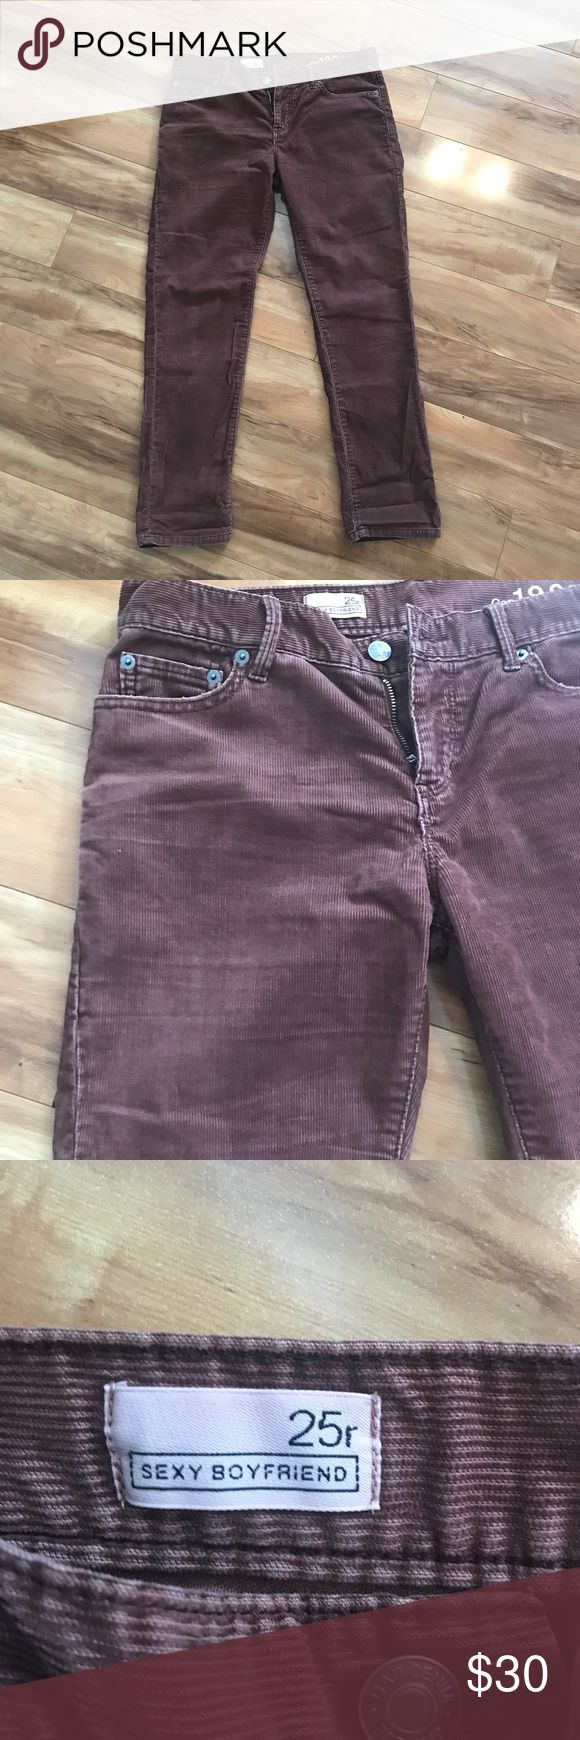 """Like New! Gap Corduroy Cafe Brown Pants Gap Corduroy Cafe Brown-colored boyfriend style pants. Super comfy material. Size is 25 Regular but boyfriend style runs larger. I'm normally a size 26 ( 5'3"""" 120-125 lbs). Inseam is 28"""". Only worn once! Let me know if you're interested. Make me an offer! GAP Pants"""